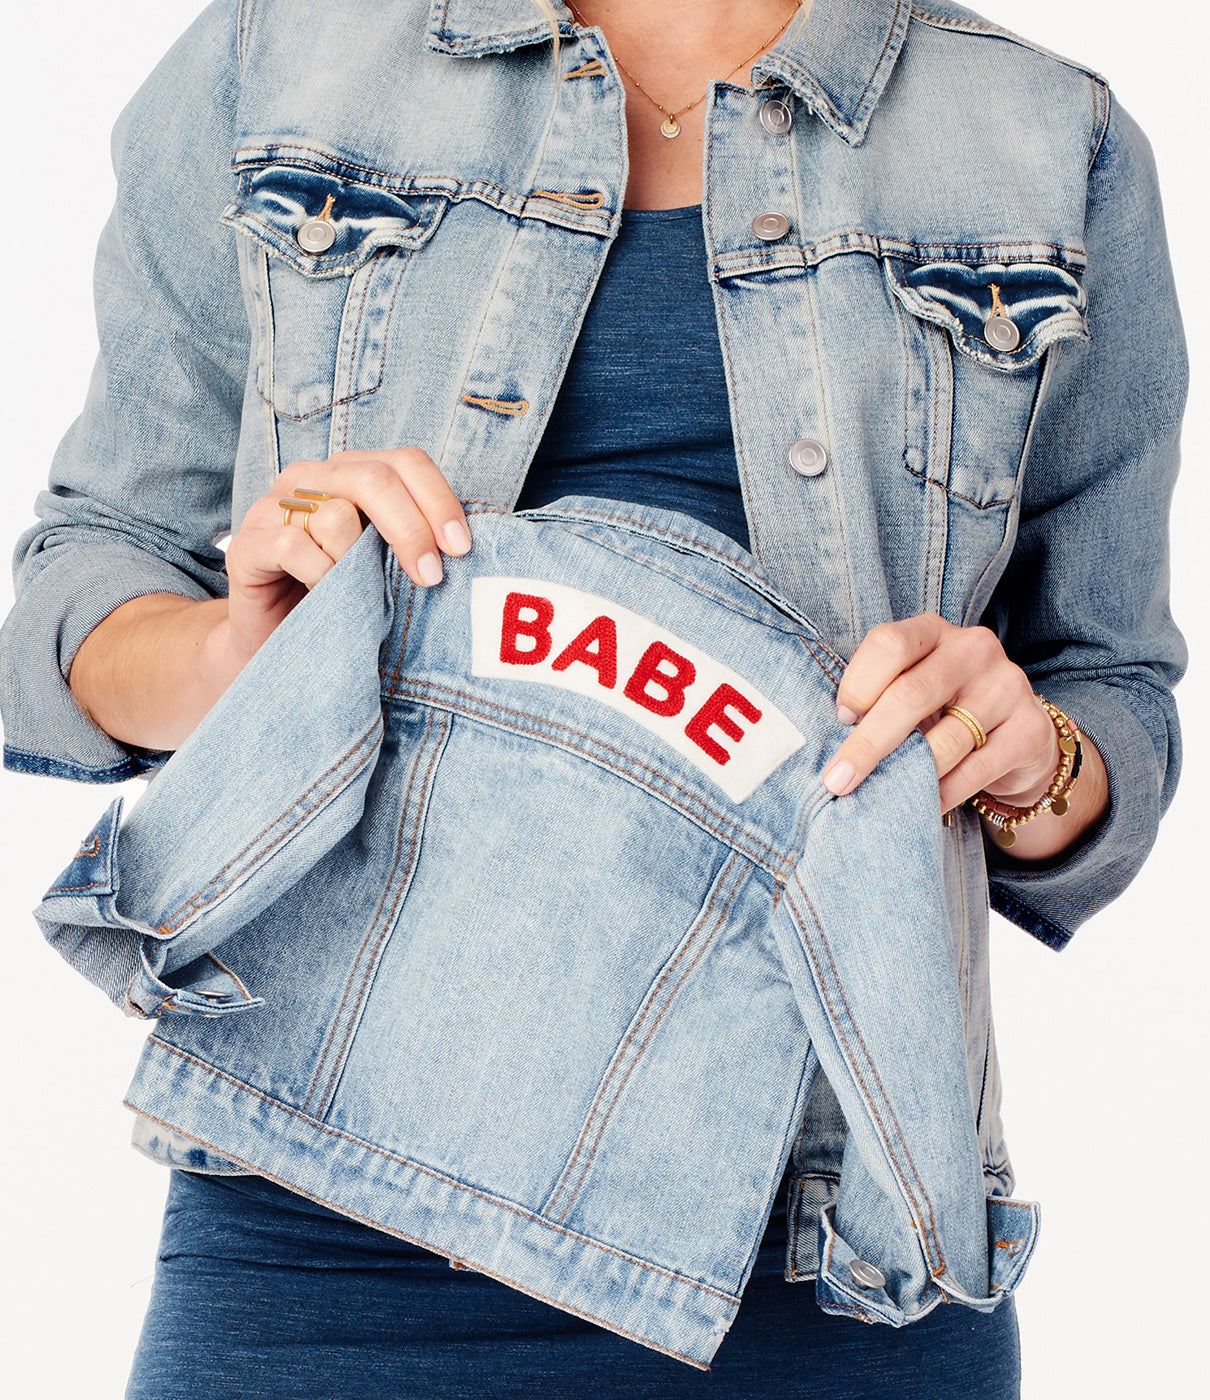 """In the DetailsChain-stitched """"Babe"""" felt patch on back."""